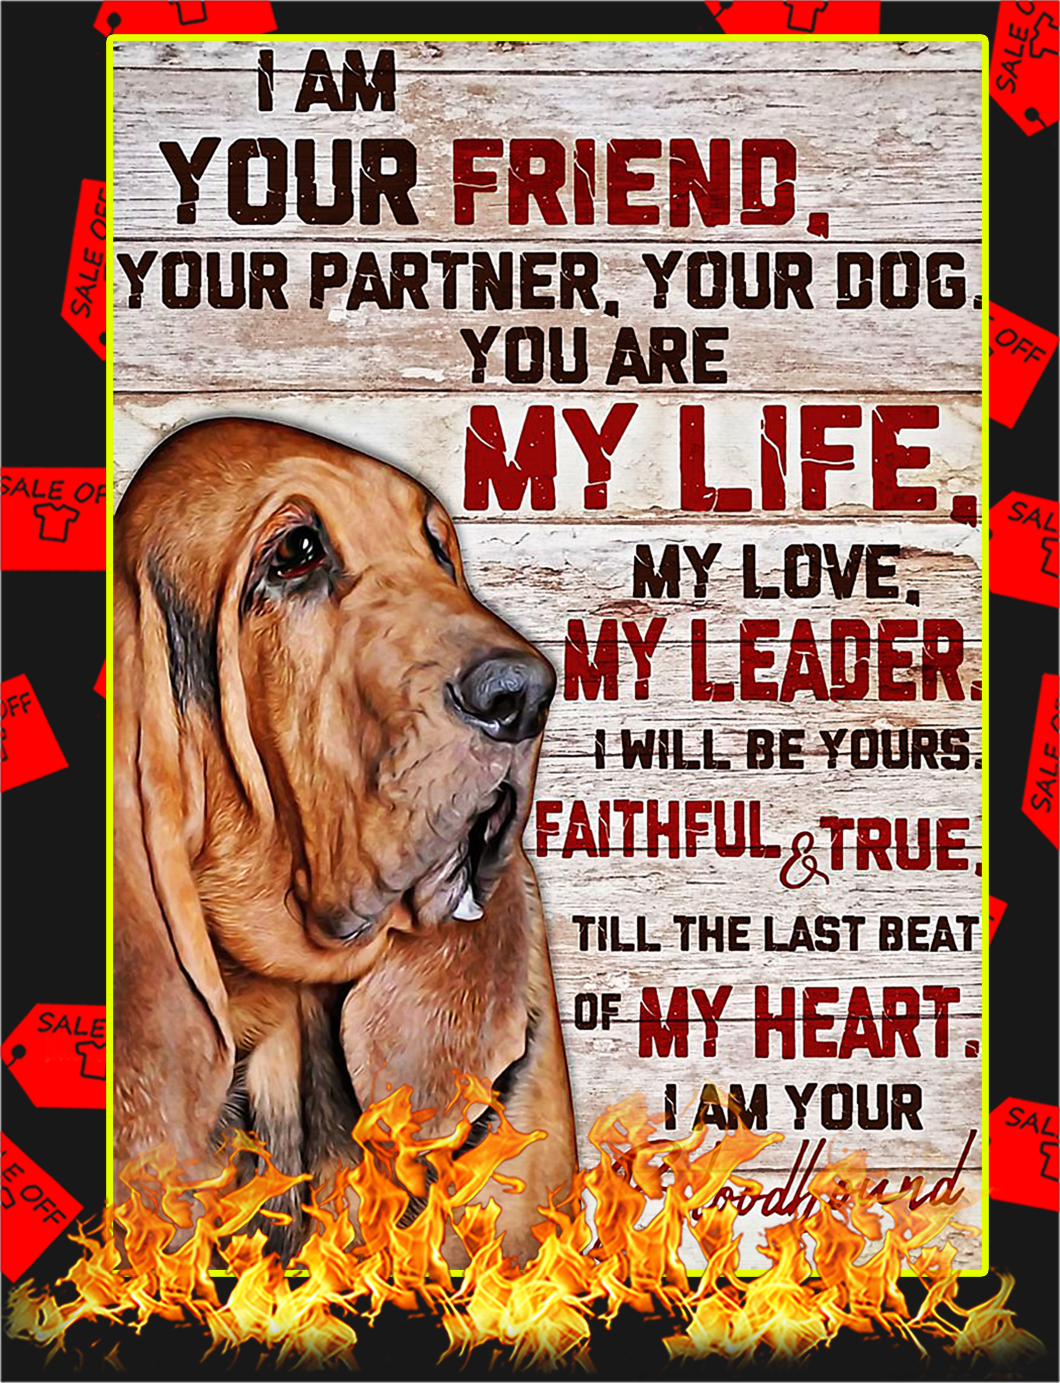 Bloodhound I'm your friend poster - A4